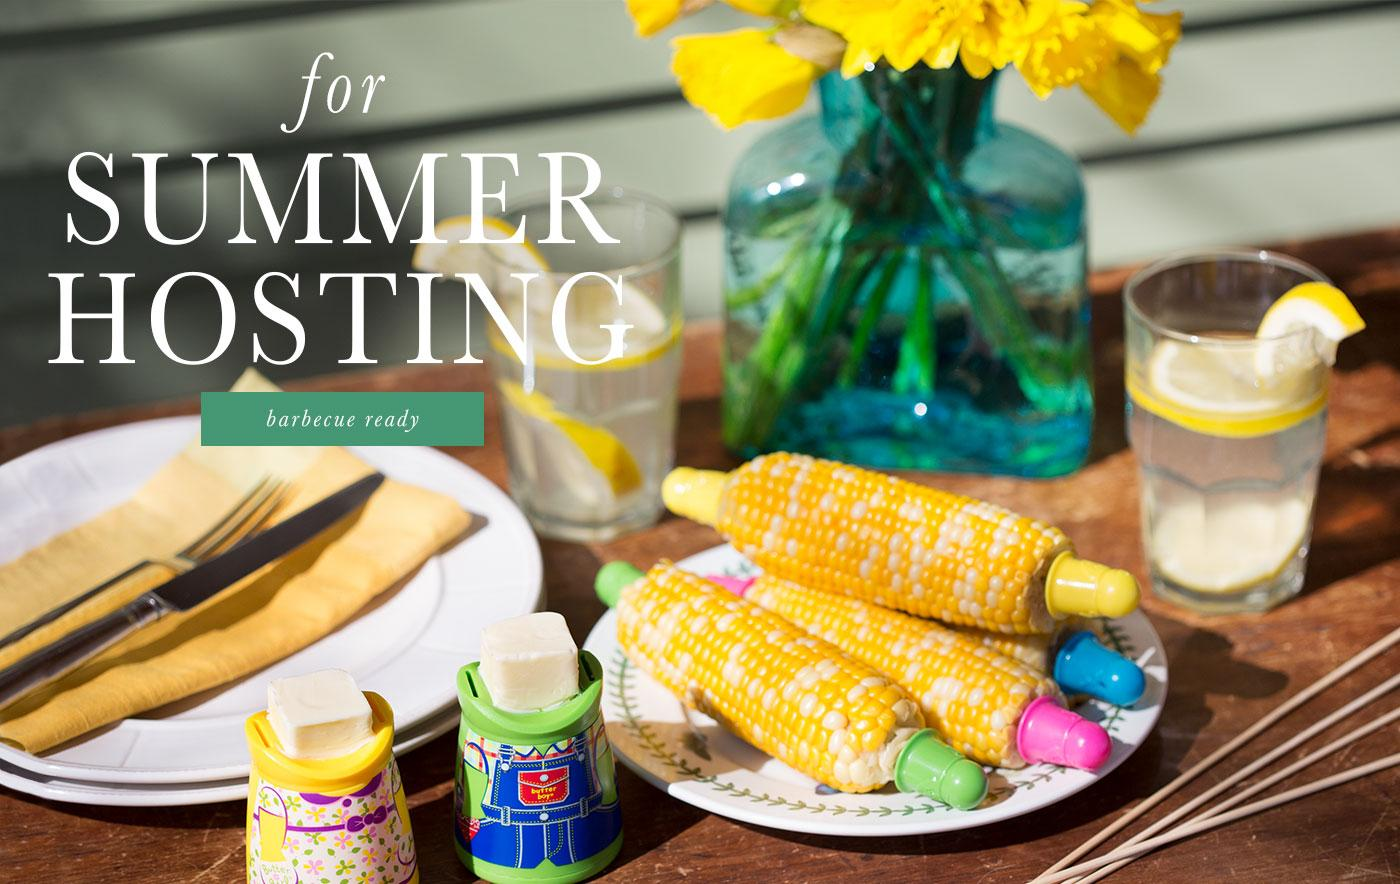 For Summer Hosting